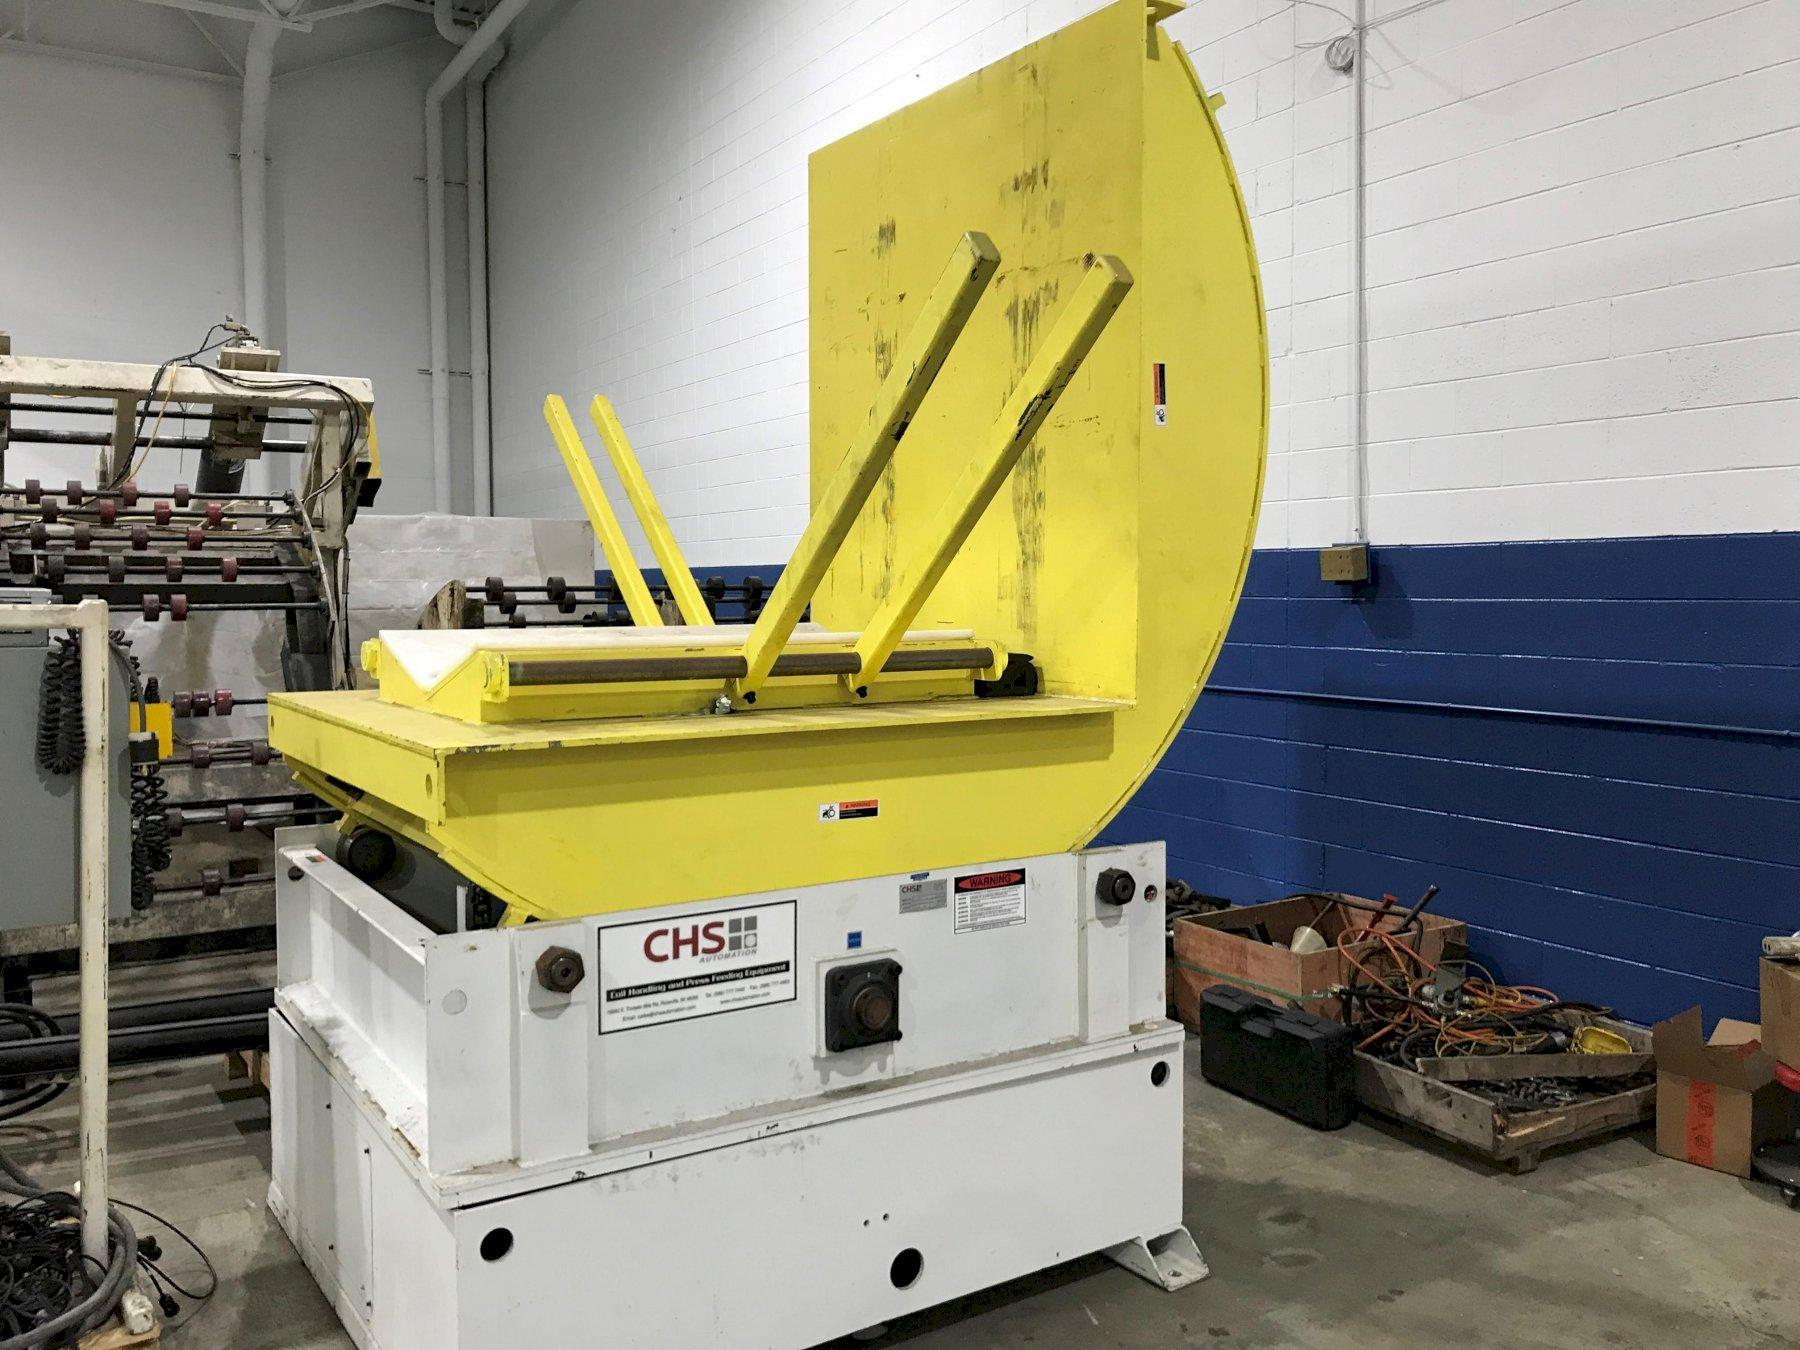 (T) CHS Automation Coil Upender 20,000 Lbs. Capacity (New Machine Never Put Into Production)